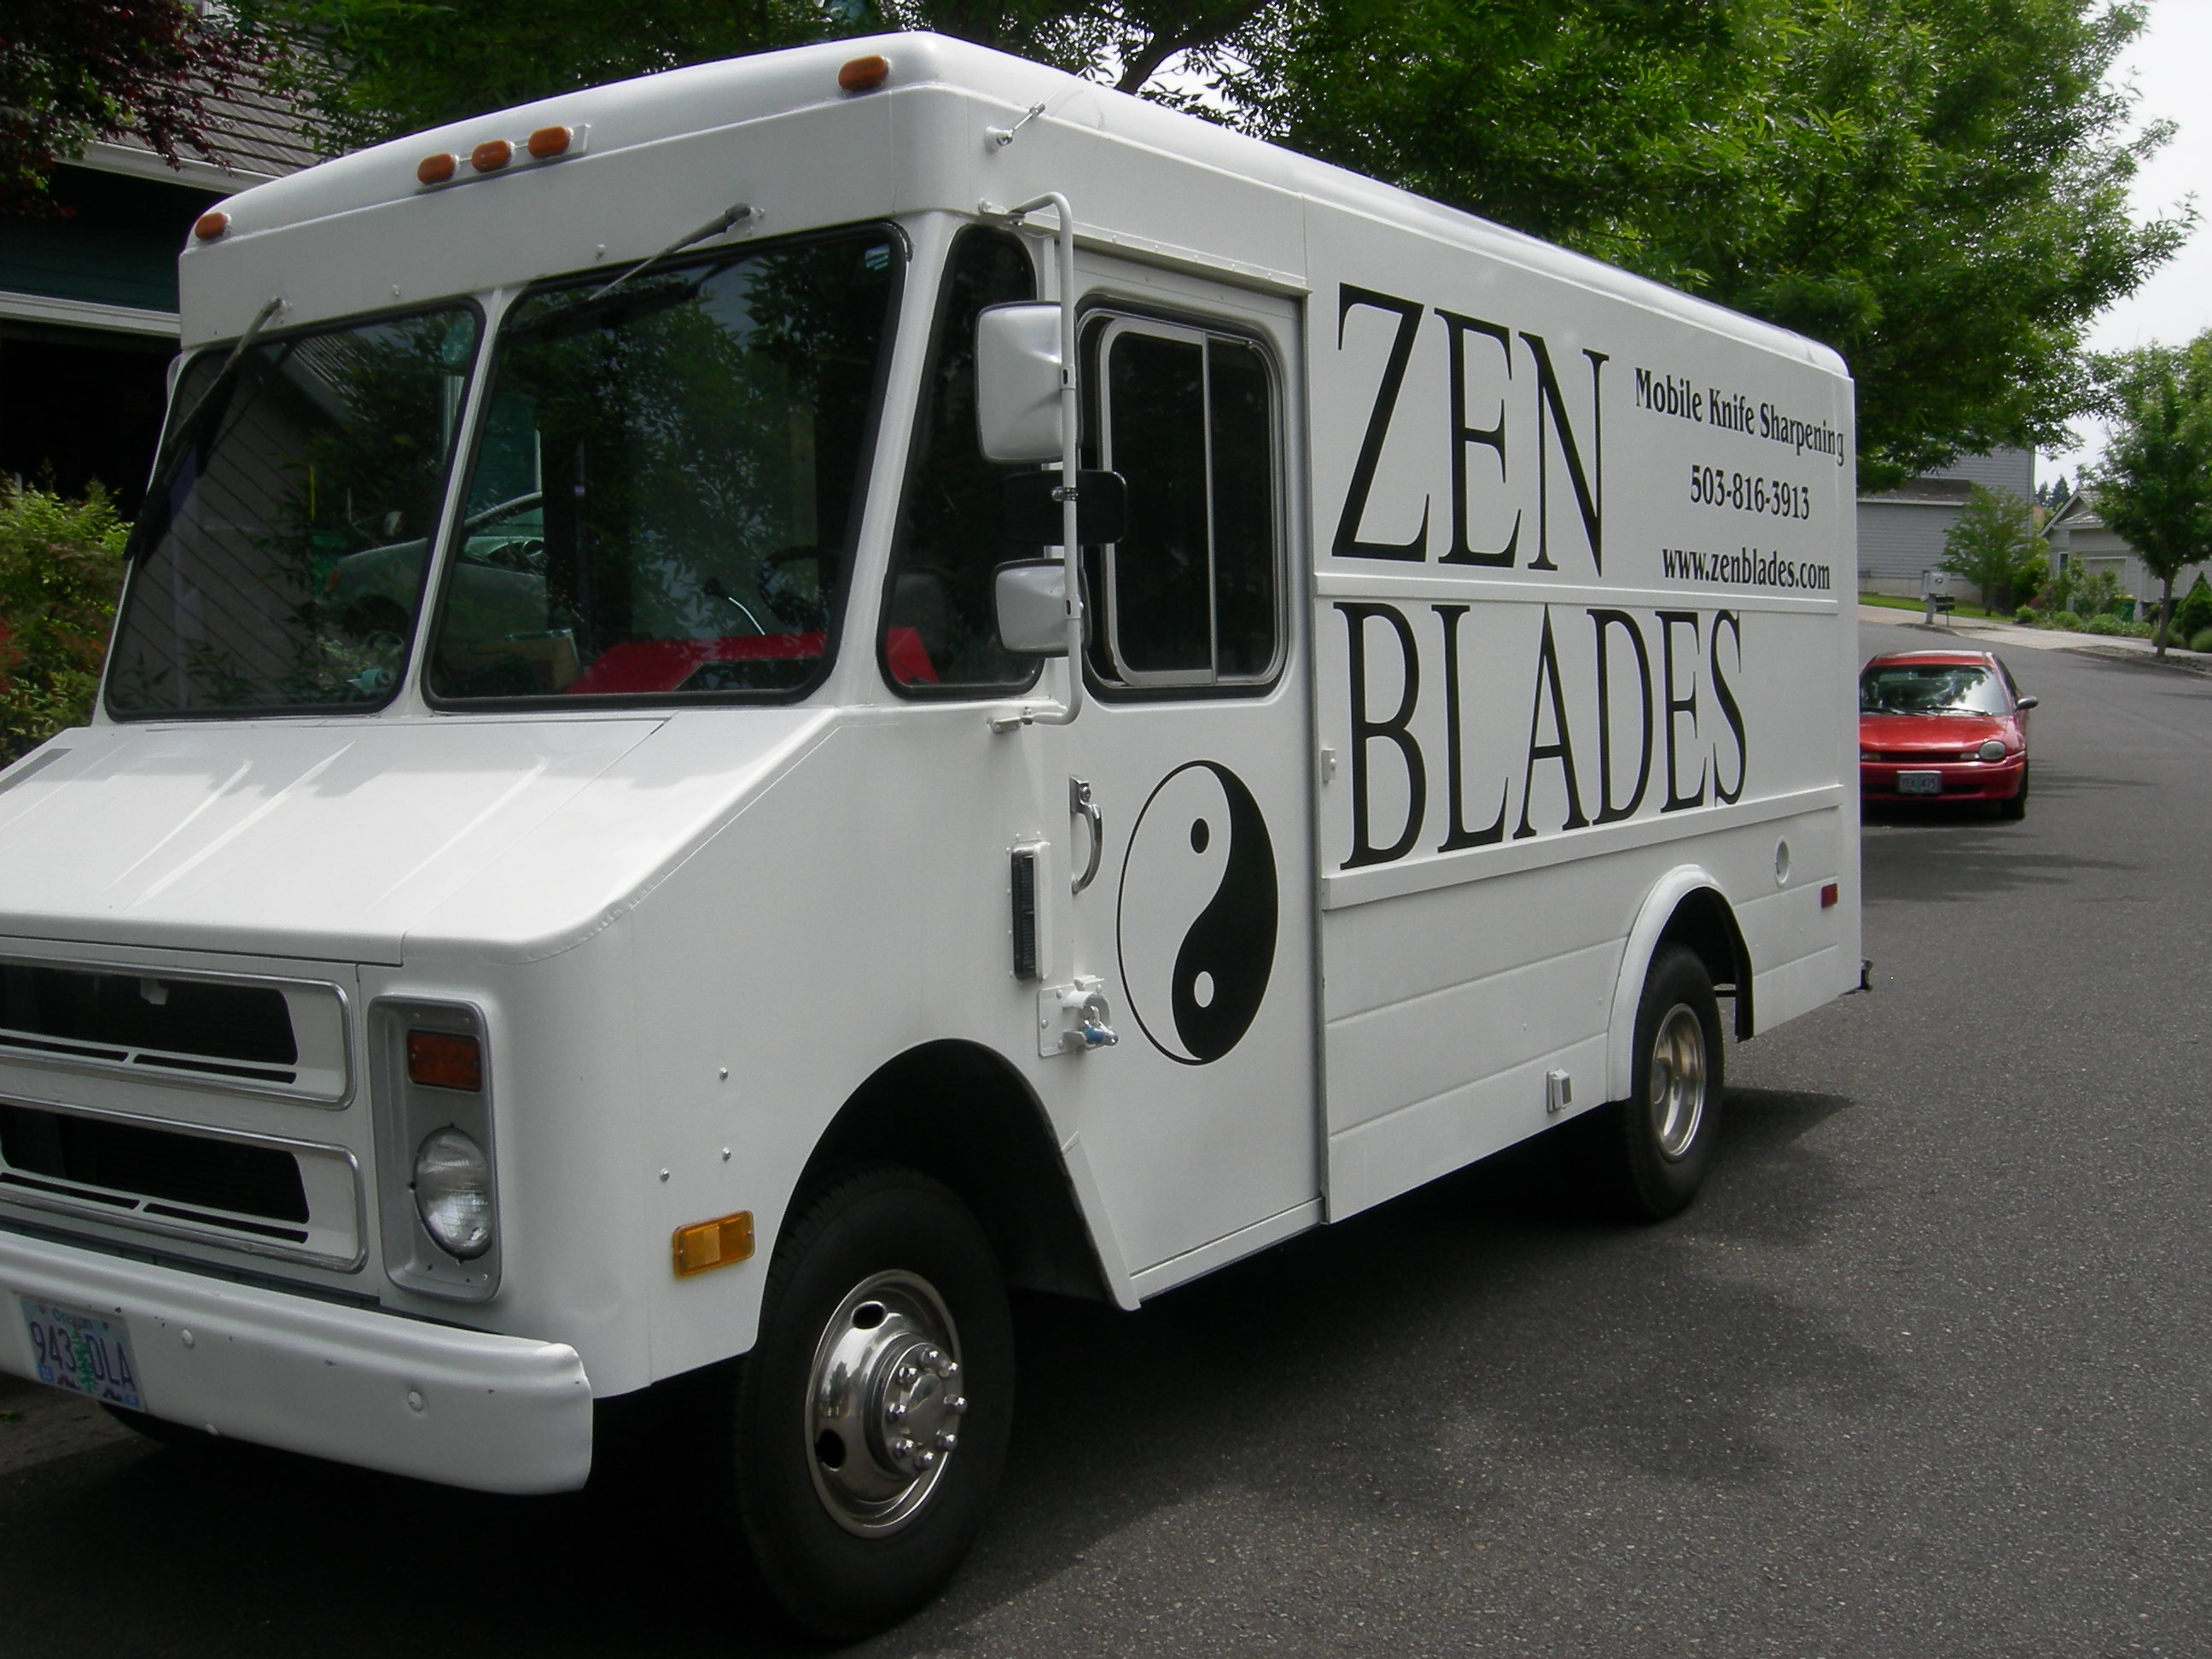 the Zen Blades mobile knife sharpening van